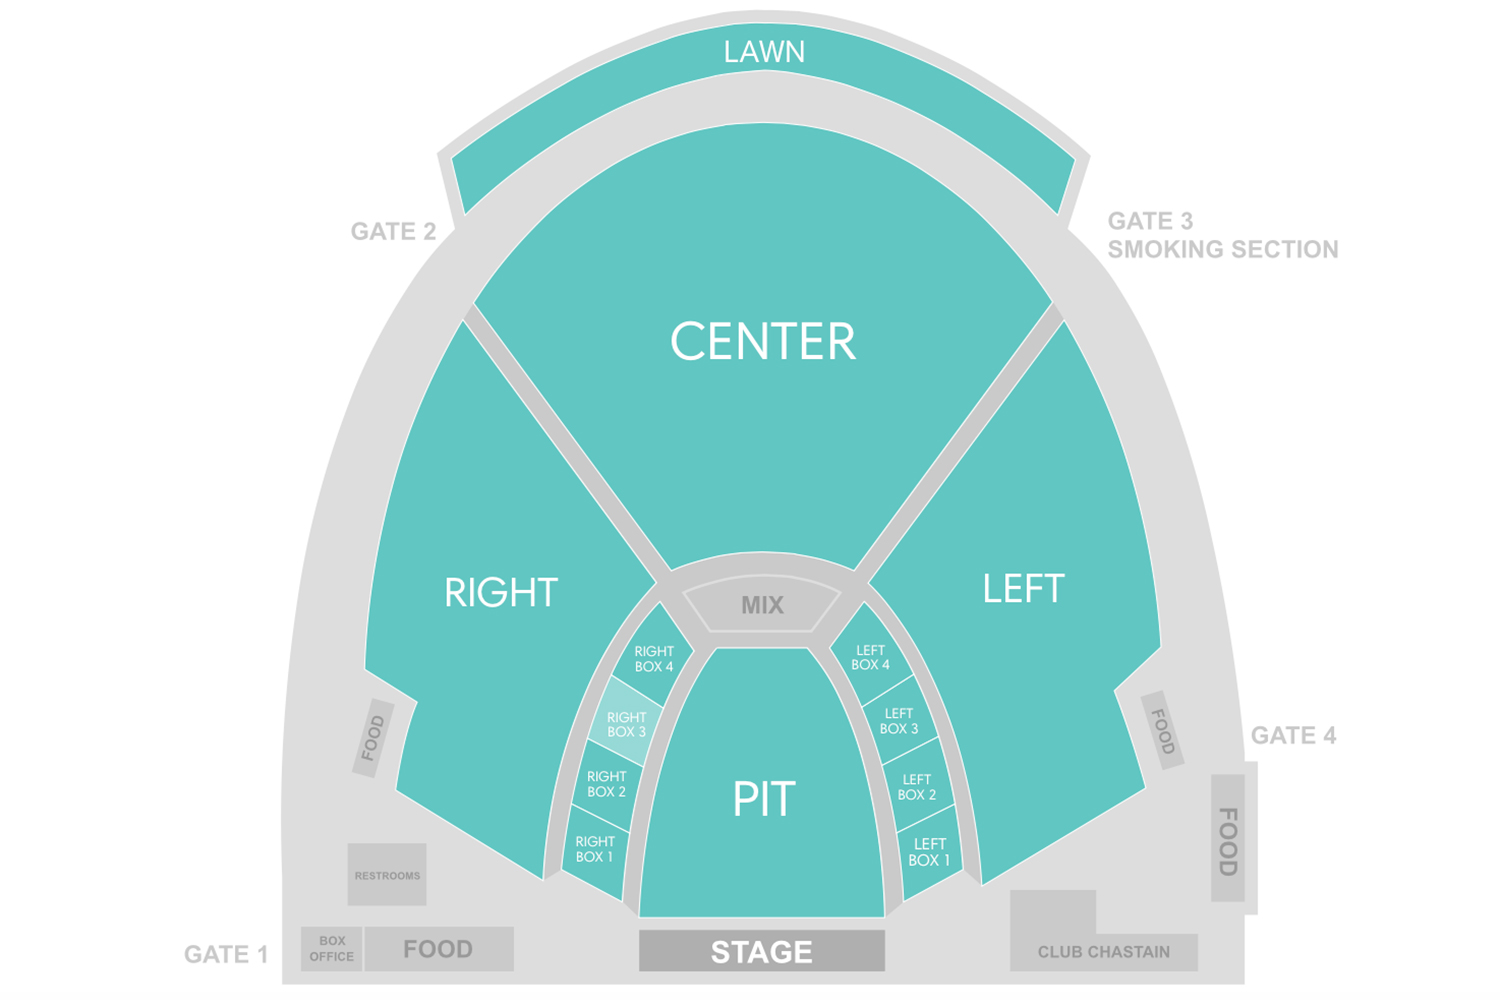 State Bank Hitheatre At Chastain Park Atlanta Tickets Schedule. Seating Charts. Seat. Chastain Park Seating Diagram At Scoala.co